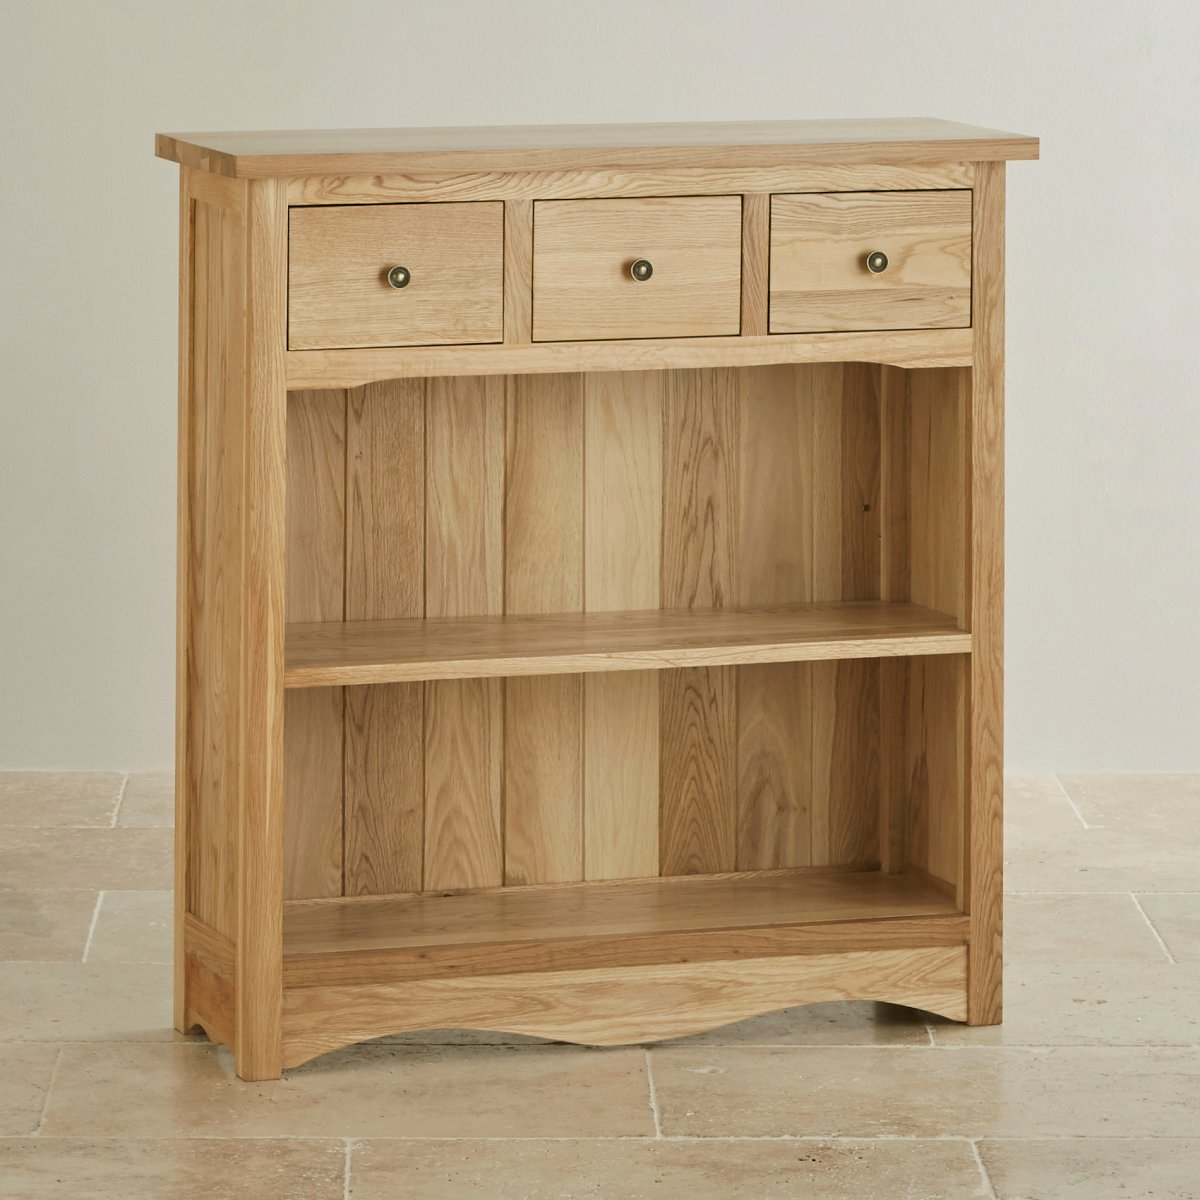 The Cairo Range Natural Solid Oak Furniture